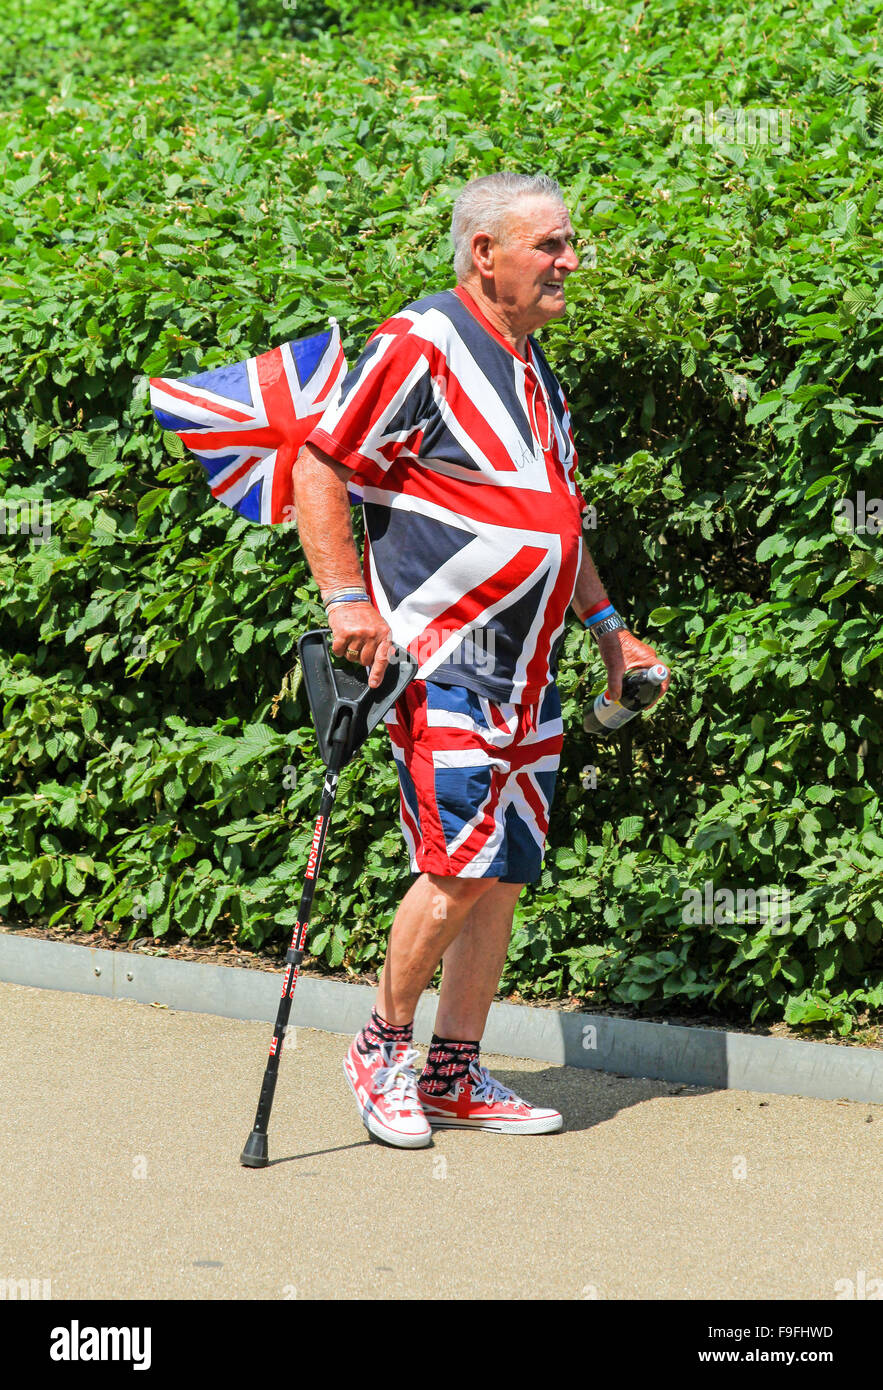 a-man-dressed-from-head-to-foot-in-union-jack-flags-london-england-F9FHWD.jpg